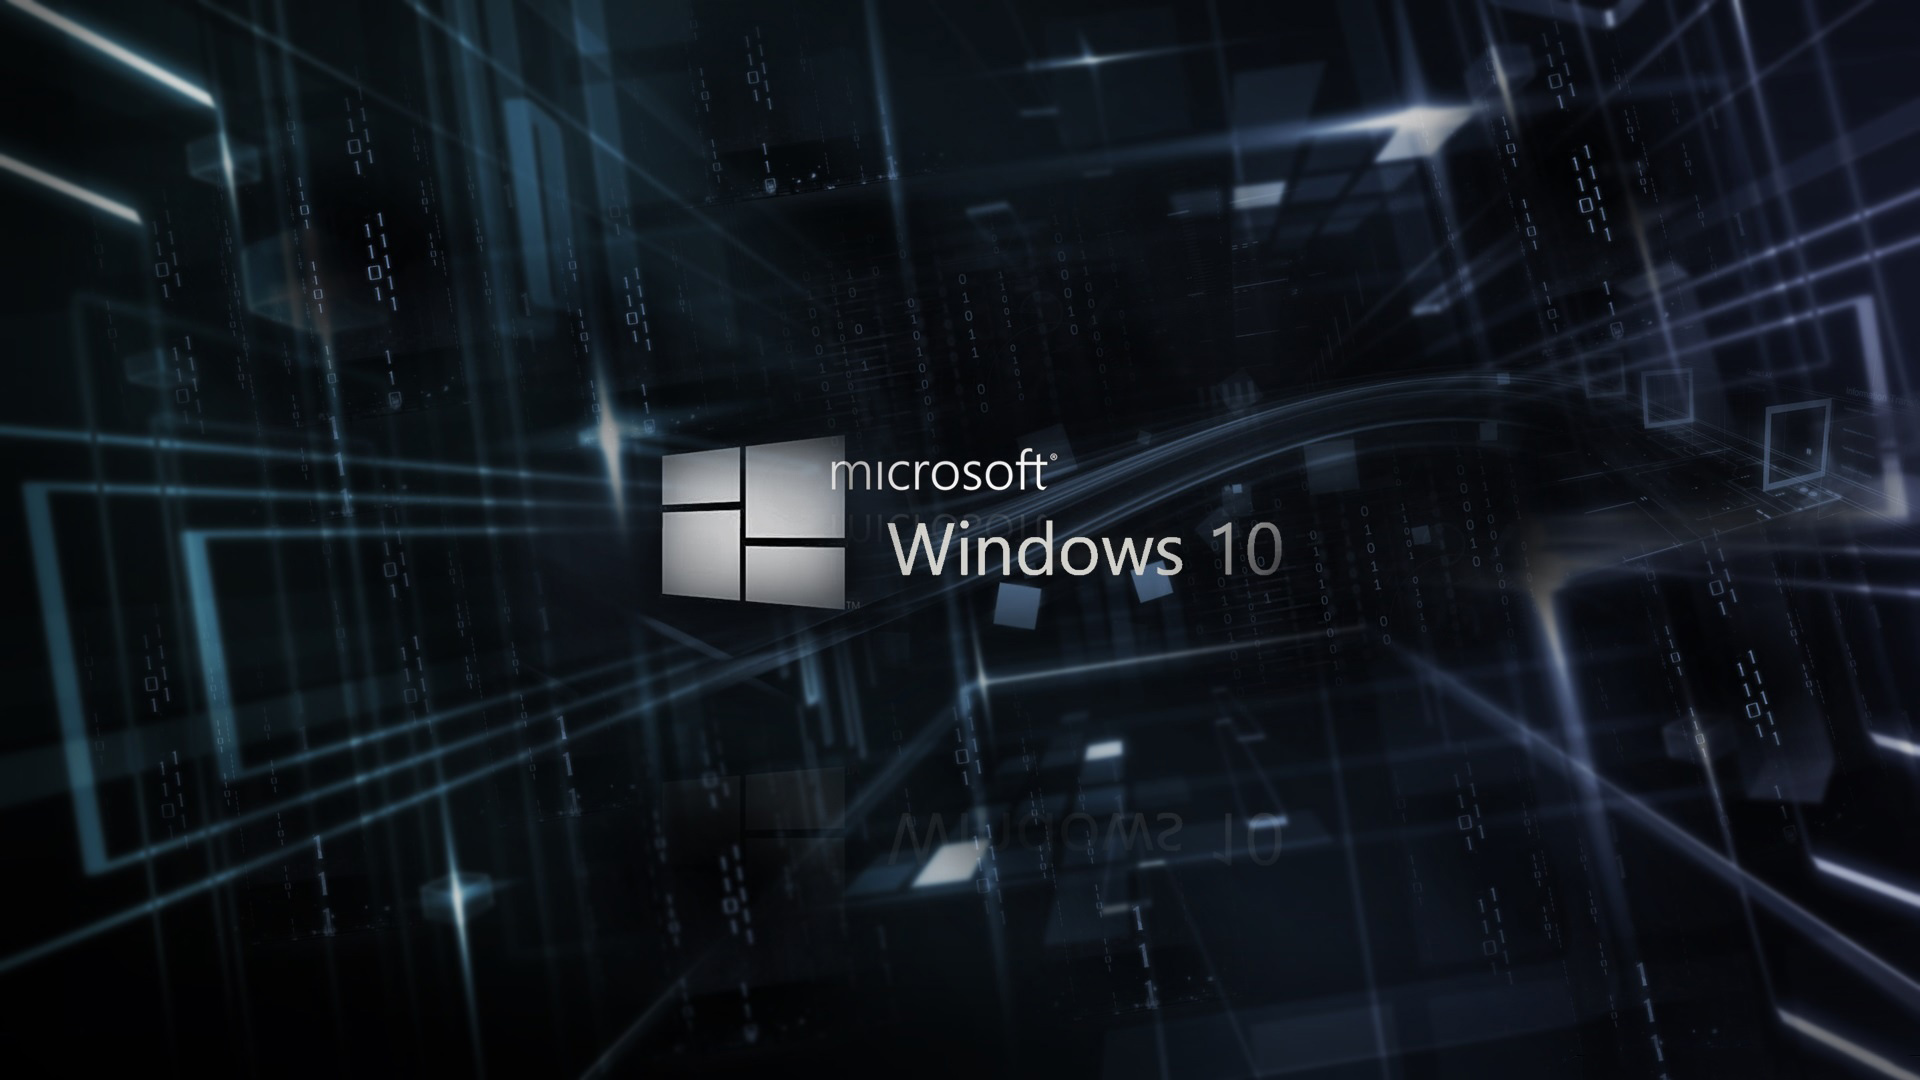 Creative Windows 10 Wallpaper: 13 Fantastic HD Windows 10 Wallpapers